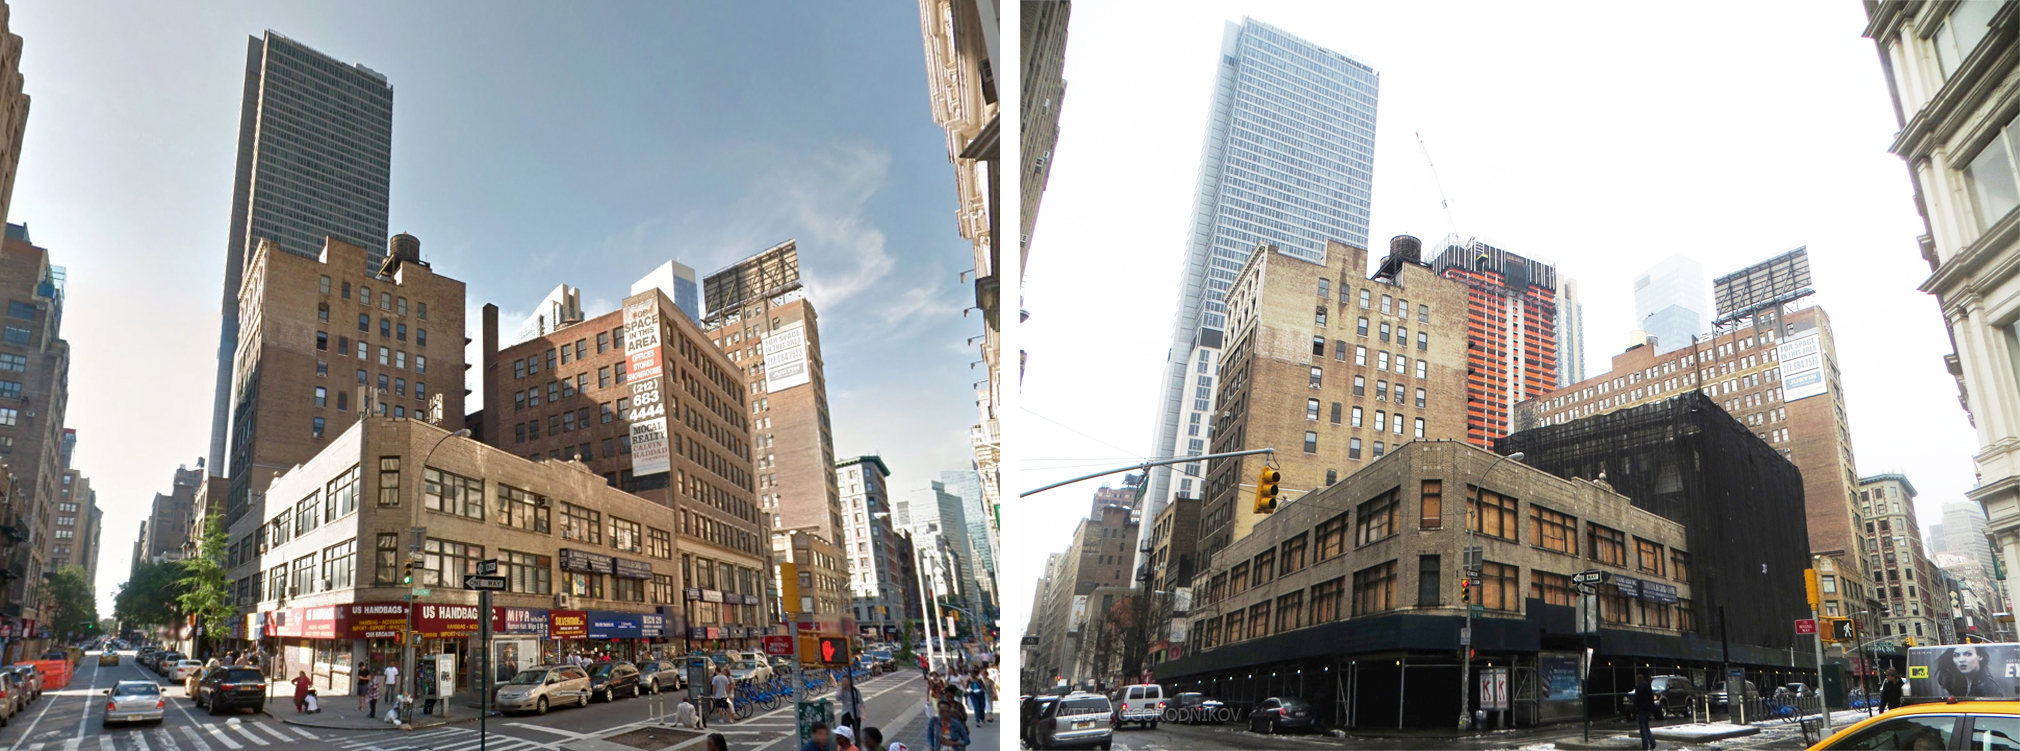 1205, 1225 and 1227 Broadway. Looking northwest from West 29th Street and Broadway. Left: August 2013 (image from Google). Right: January 2015